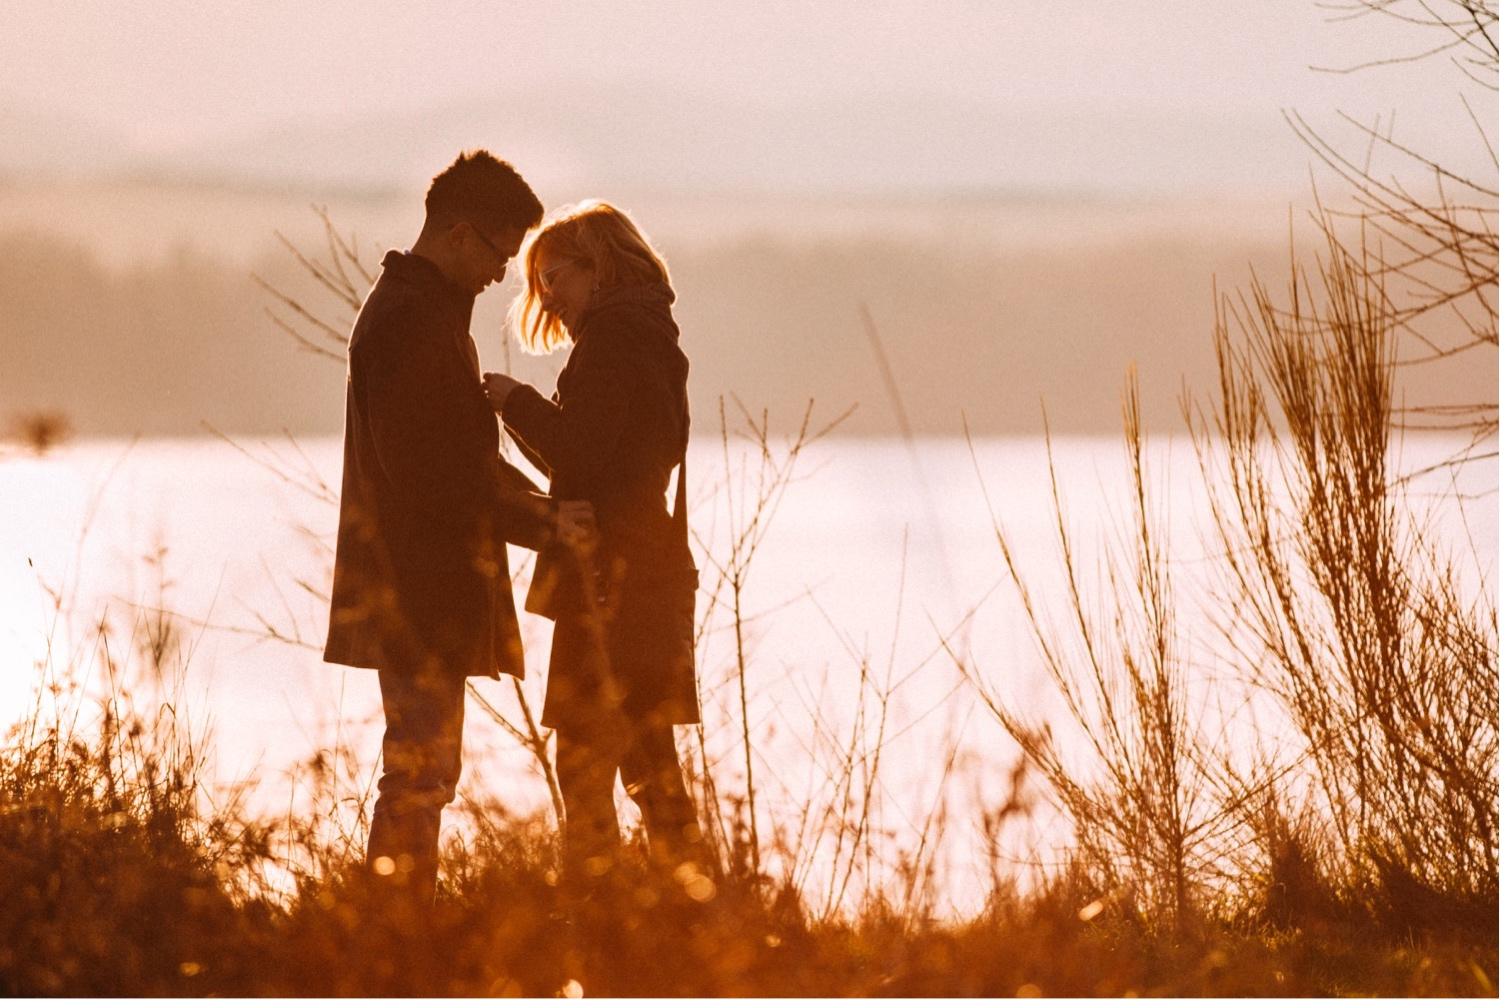 08_MC-24_sunsetproposal_adventure,_adventurous,_discoverypark_zoe_elopement_elopementphotographer_zoeburchardstudio_seattlebride_sunset_burchard_proposal,_seattle_photographer.jpg